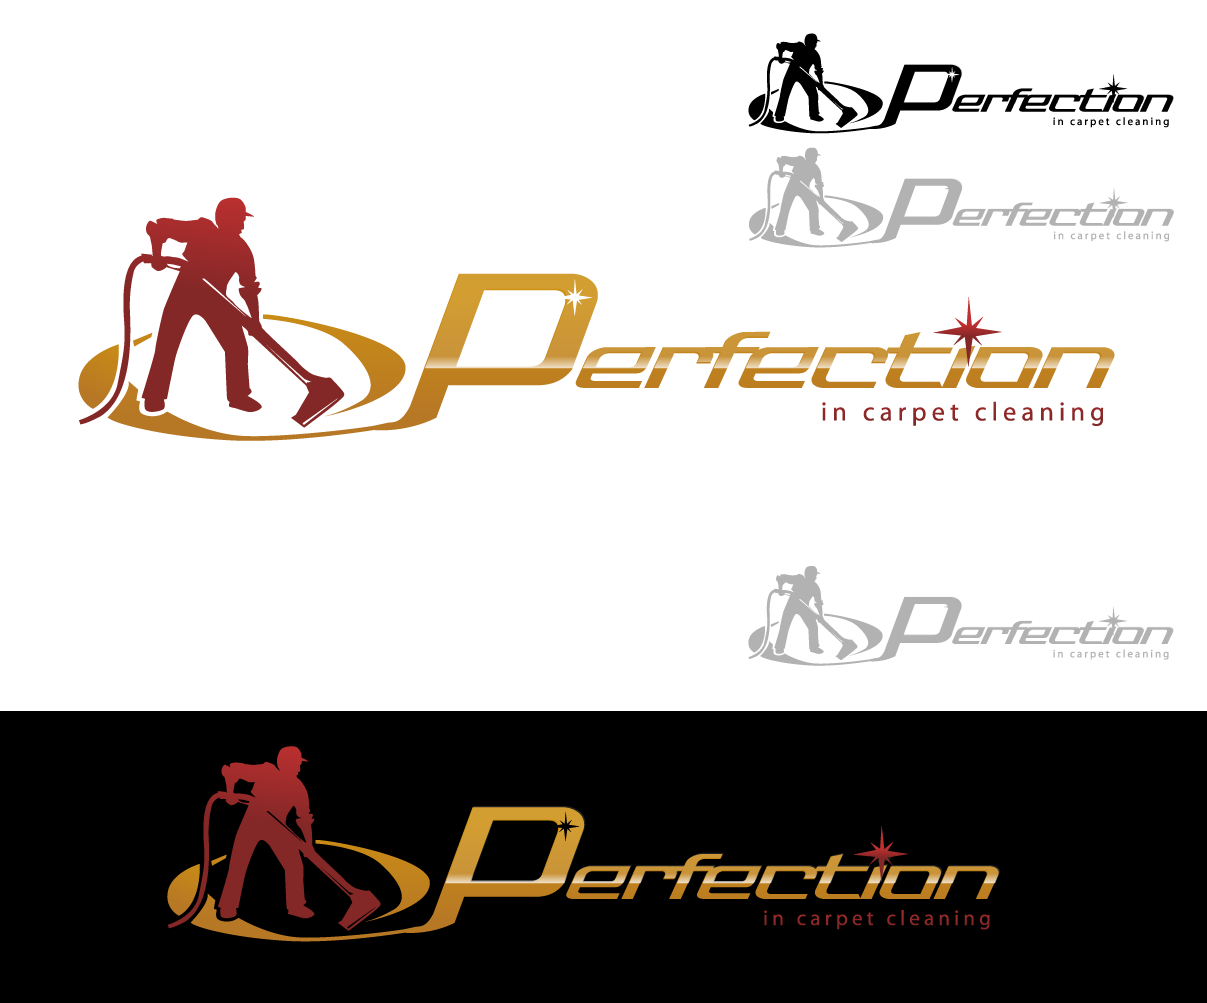 Elegant Modern Carpet Logo Design For Perfection In